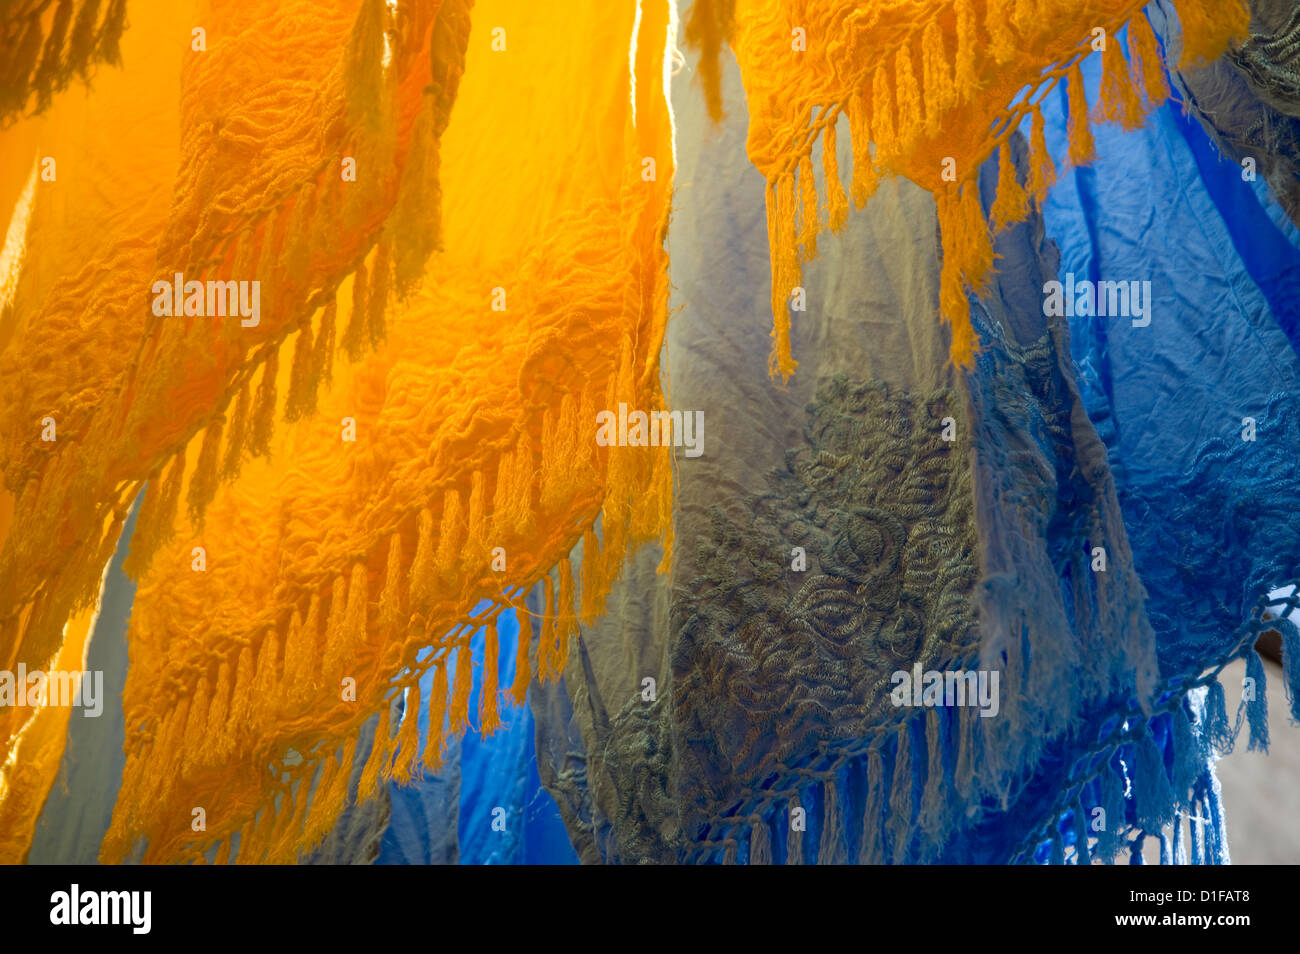 Brightly coloured dyed fabrics hanging to dry in the dyers souk, Marrakech, Morocco, North Africa, Africa - Stock Image